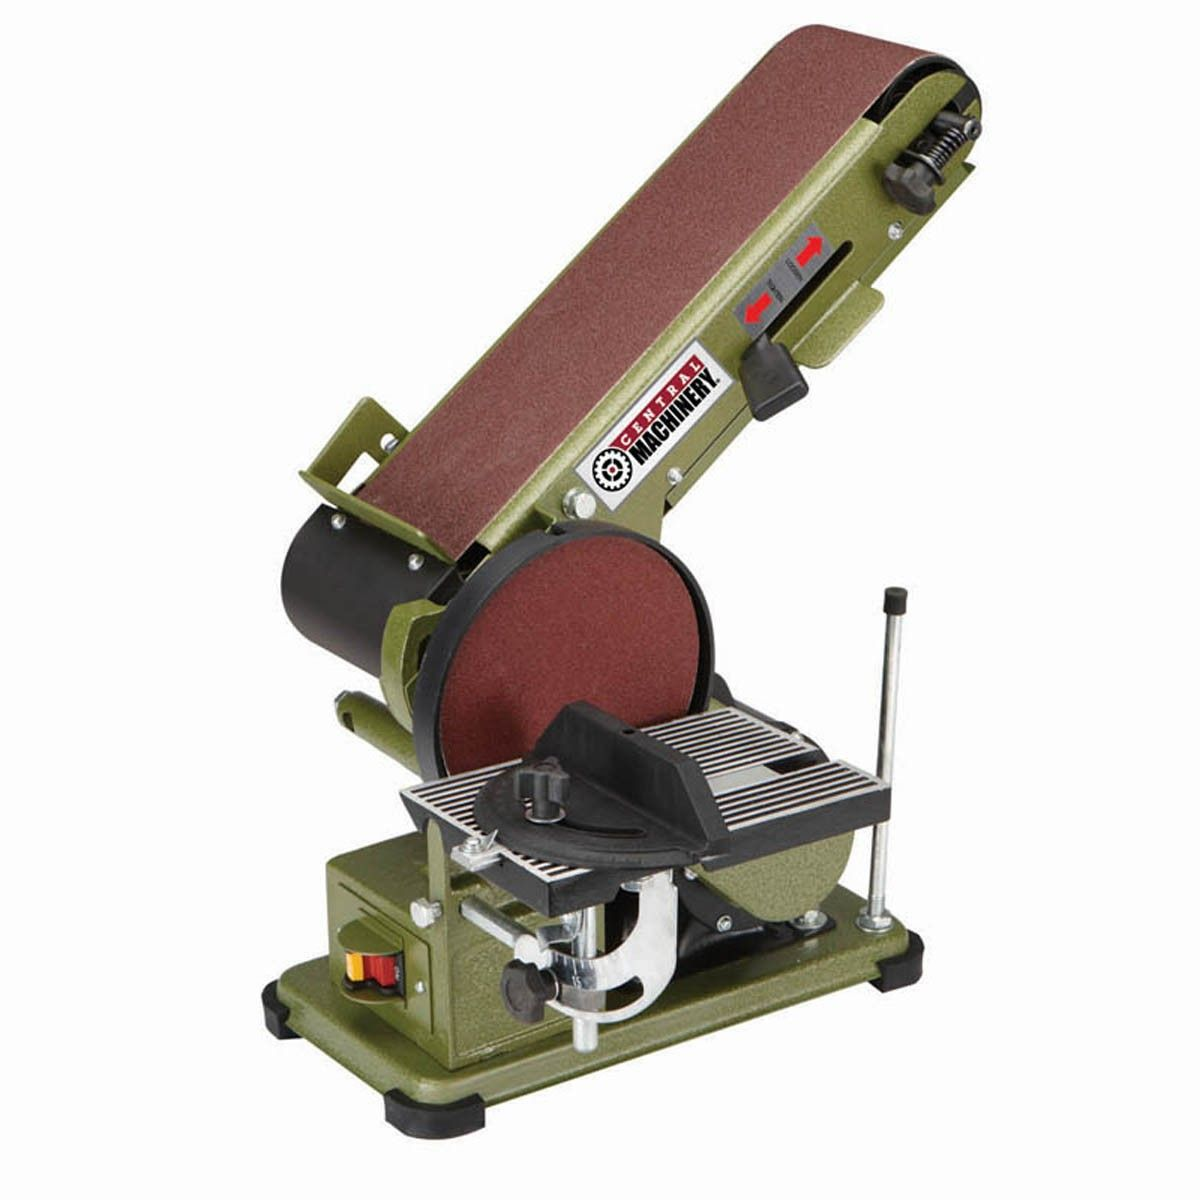 4 In X 36 Belt6 Disc Sander 2018 Things I Like. A Beltdisk Sander This Is The Cheapest One I've Found And Would Work Just Fine For Me. Wiring. 6in Bench Grinder Wiring Diagram At Scoala.co